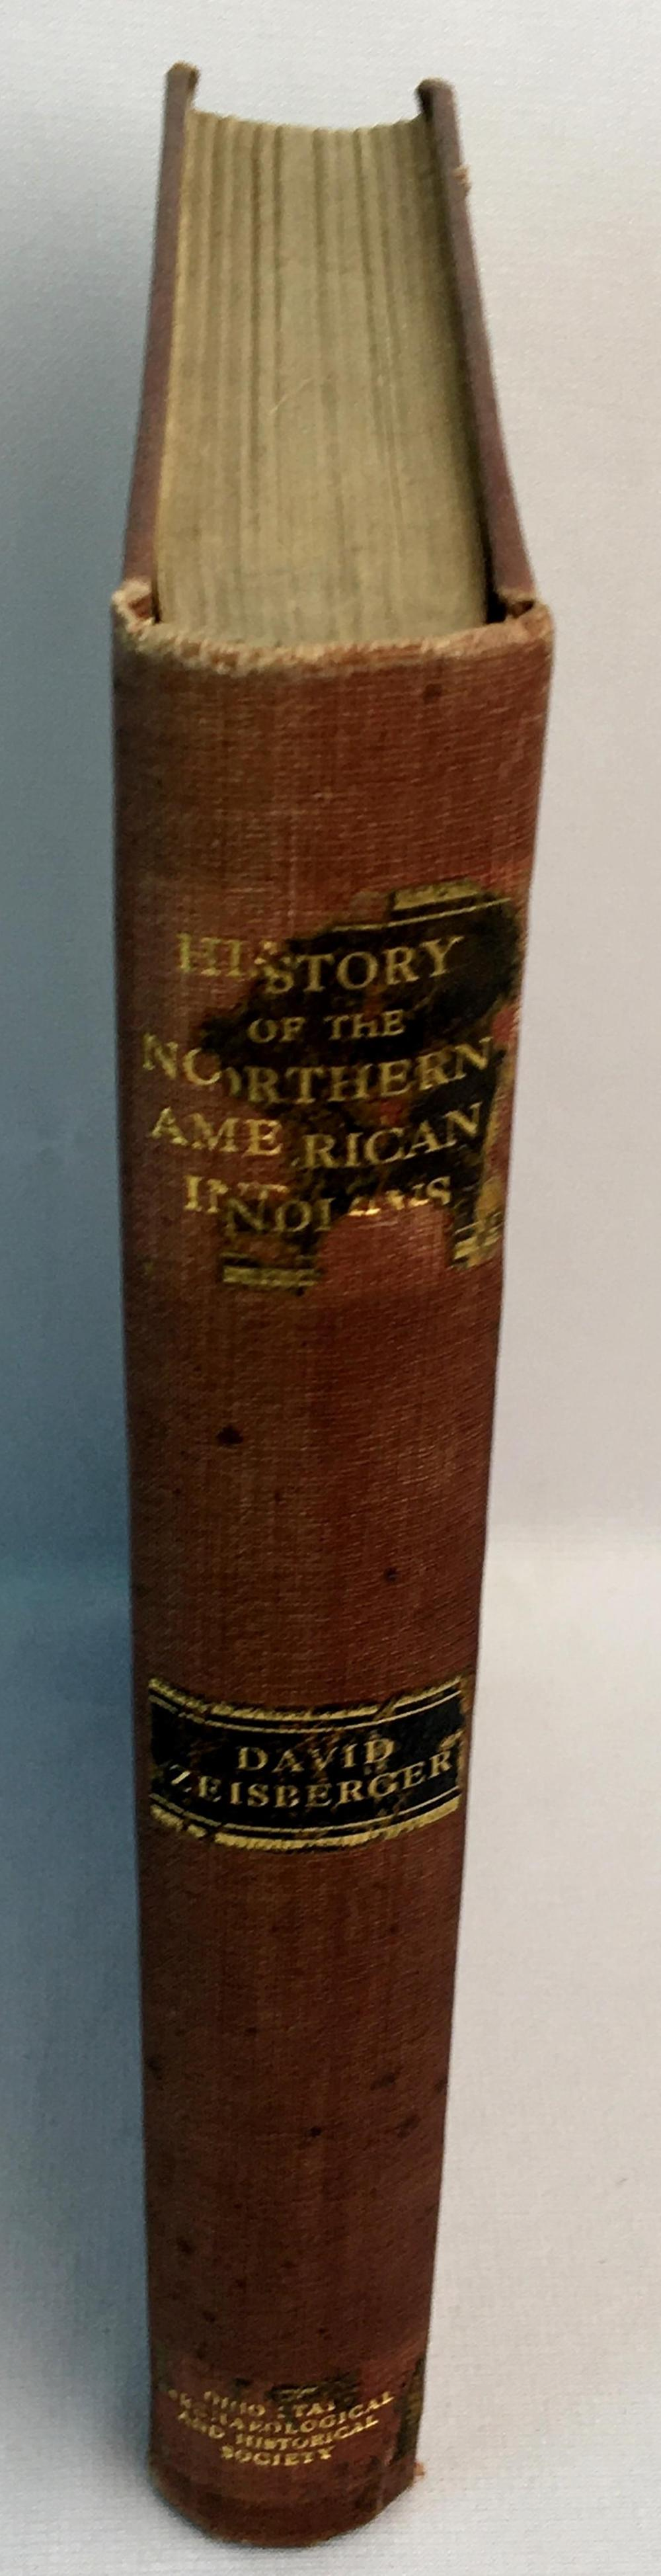 1910 David Zeisberger's History of The Northern American Indians by Hulbert and Schwarze FIRST EDITION